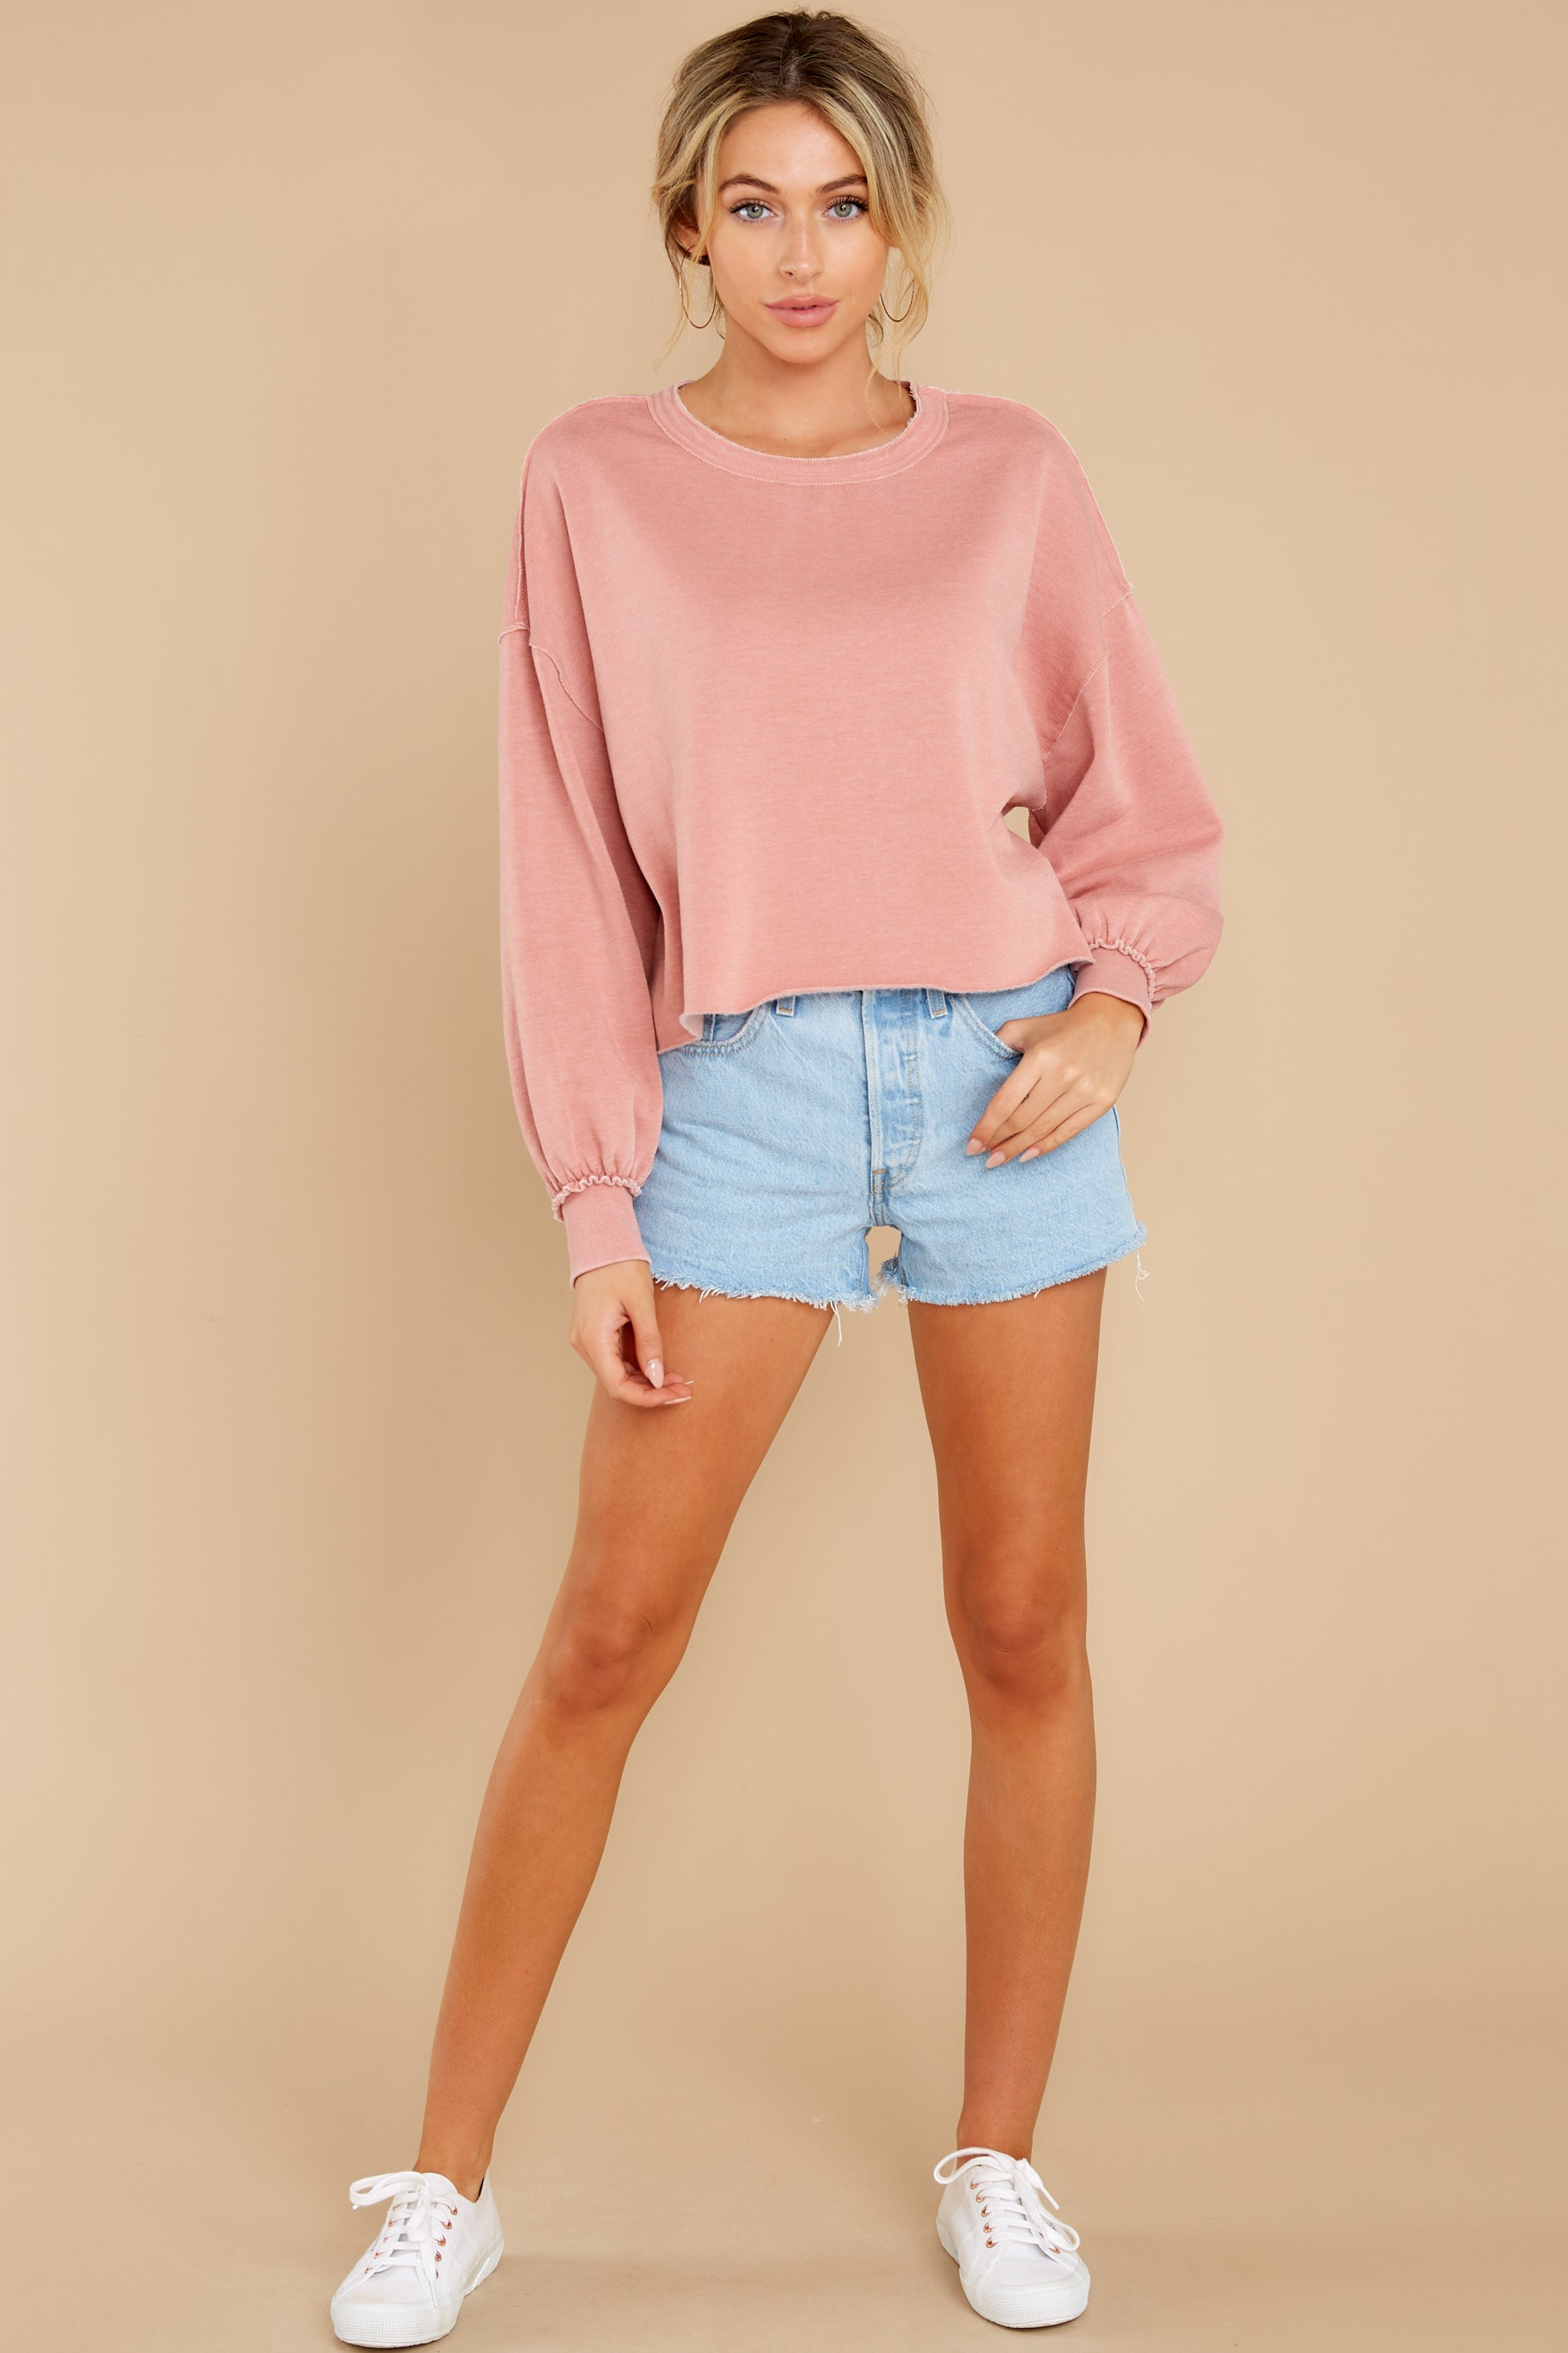 3 Tempest Petal Pink Sweatshirt at reddress.com